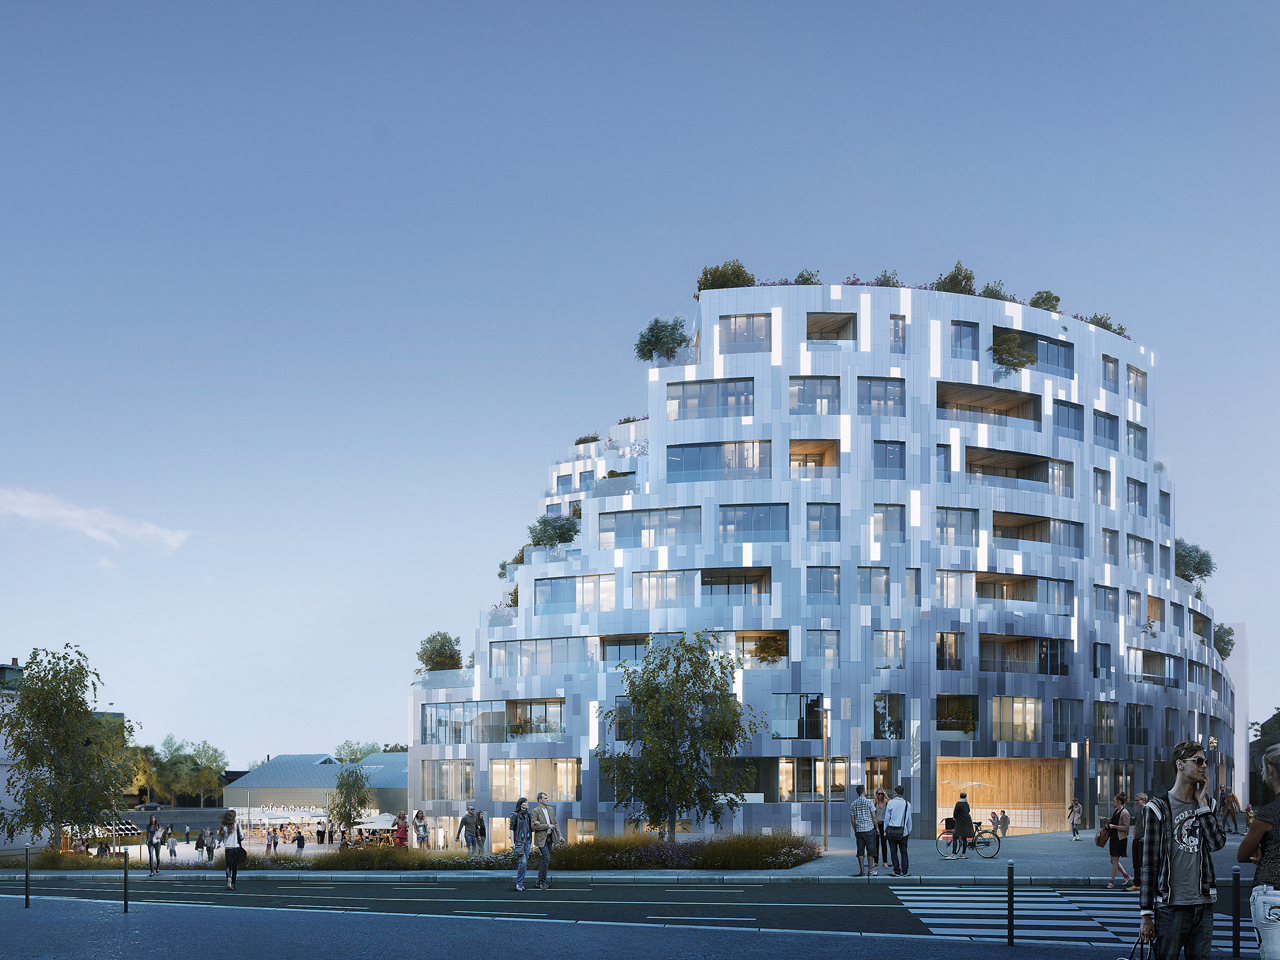 MVRDV win competition for Ilot de l'Octroi, a residential complex in Rennes